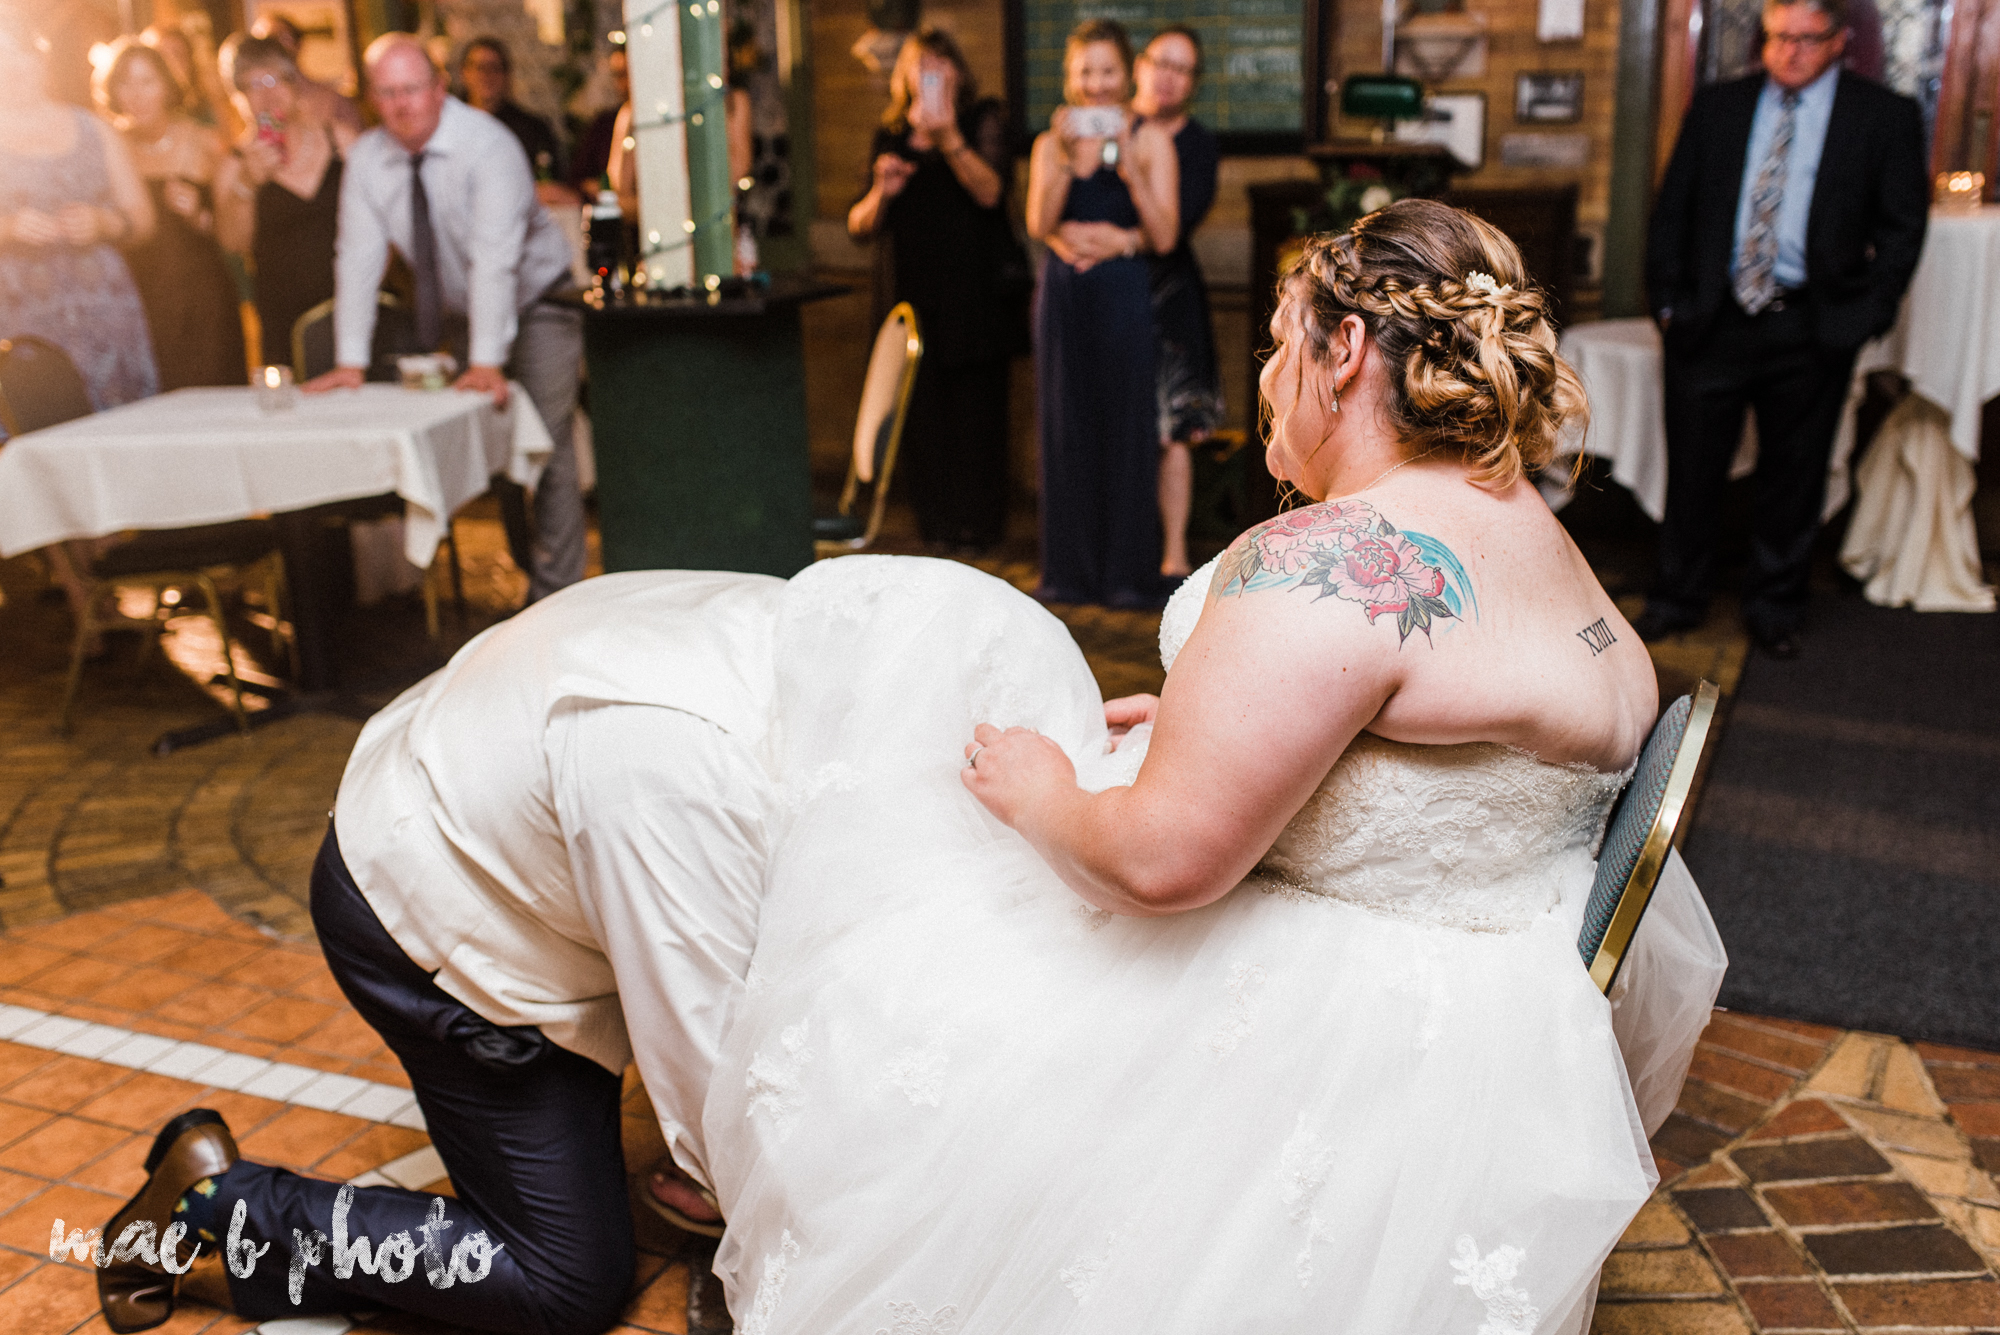 Kristina and ryan's personal vintage glam fall wedding at disalvo's station restaurant and the arnold palmer latrobe country club in latrobe, pa photographed by youngstown wedding photographer mae b photo-82.jpg